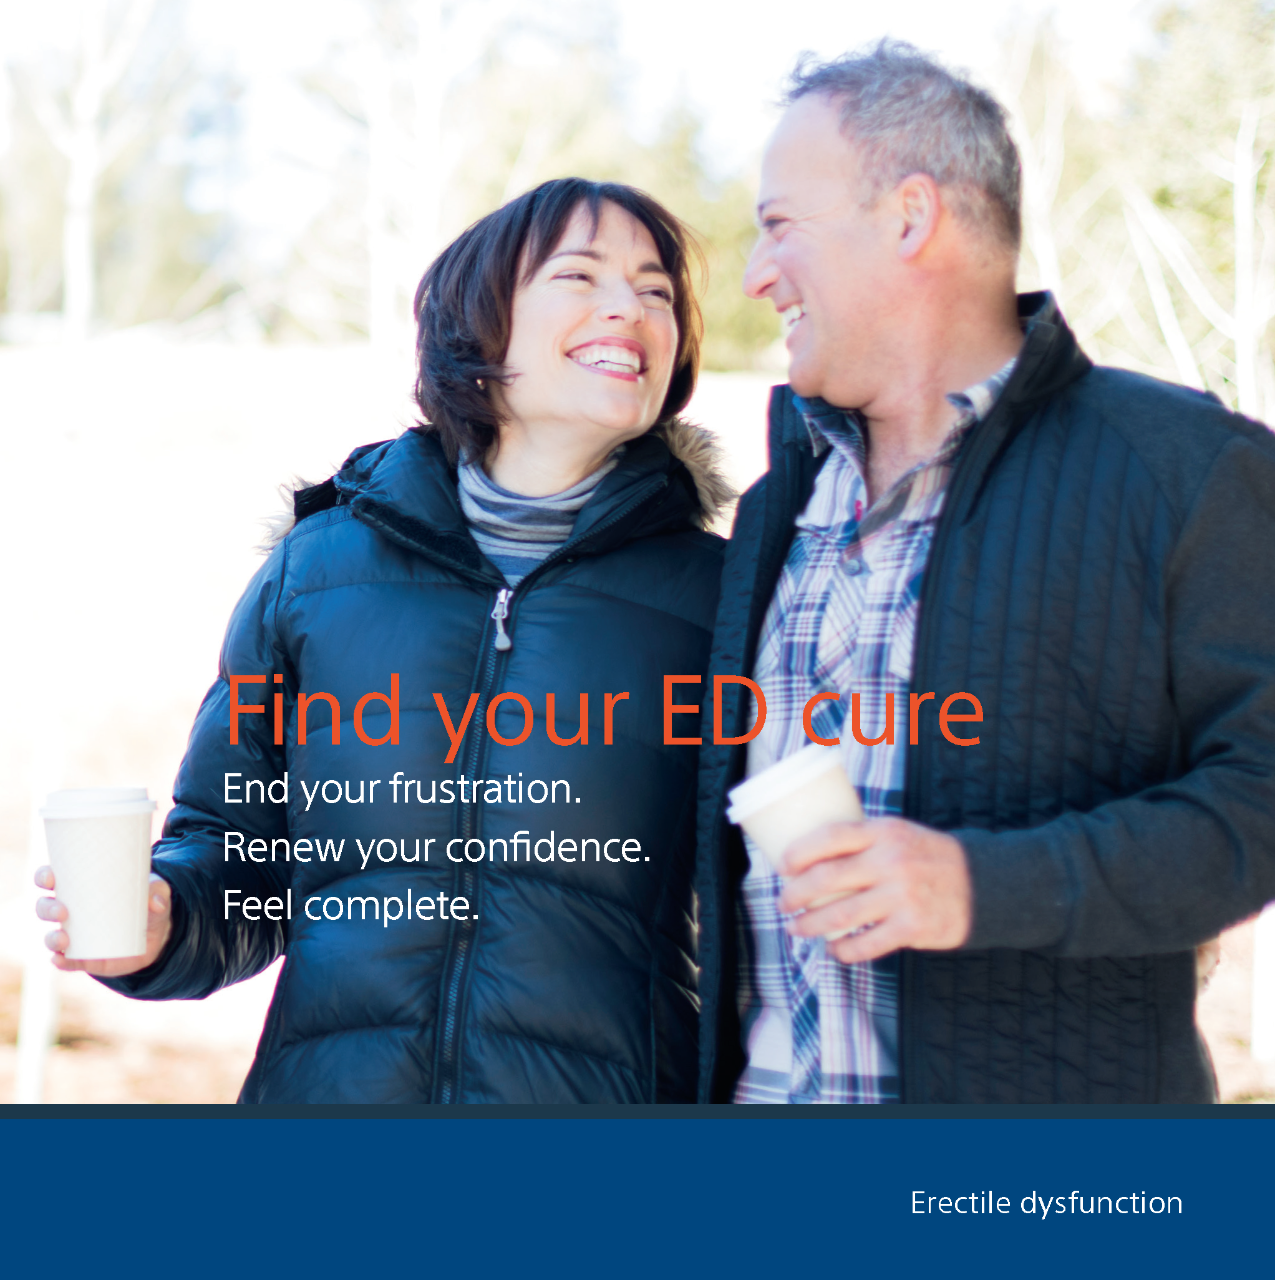 Find your ED Cure - Patient Education Brochure